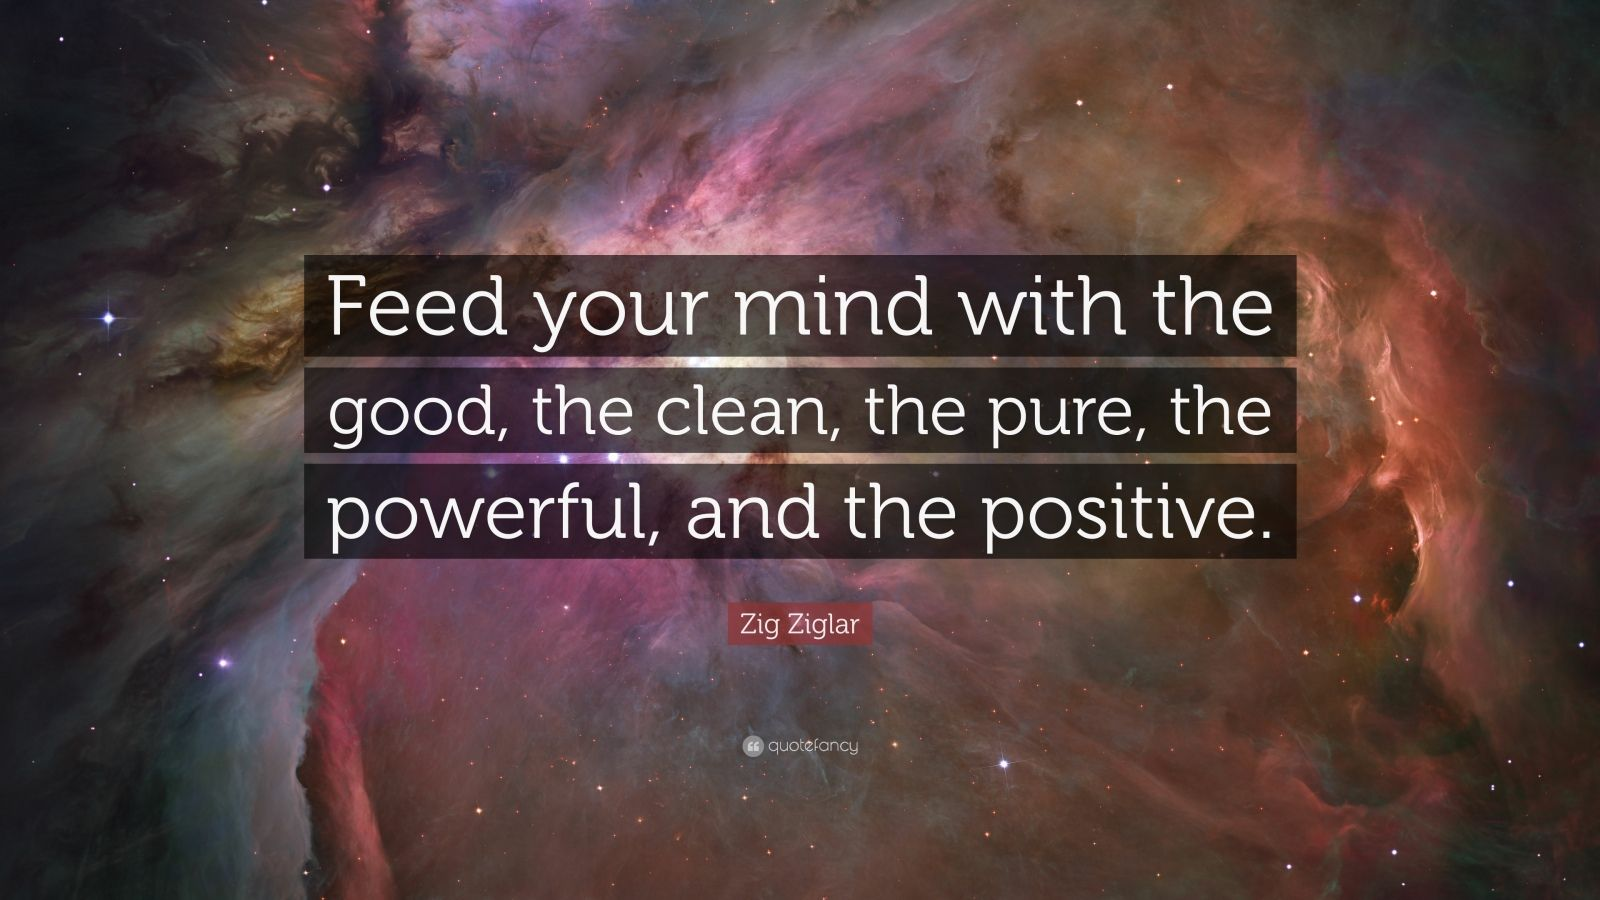 """Zig Ziglar Quote: """"Feed your mind with the good, the clean, the pure, the powerful, and the positive."""""""